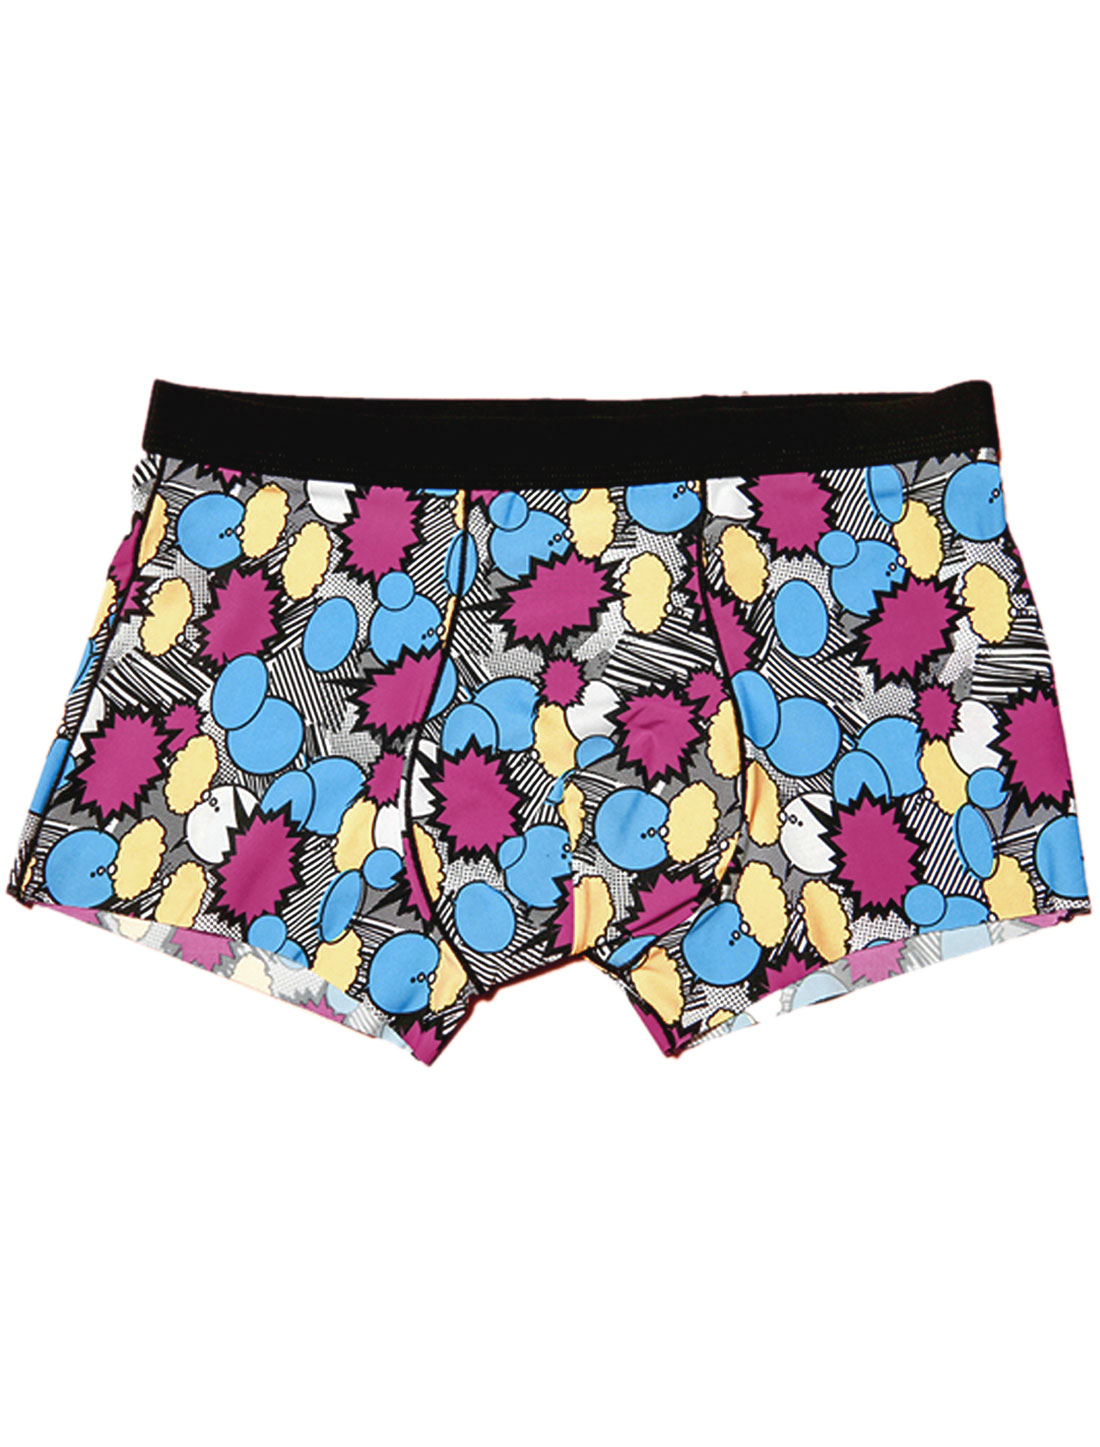 Elastic Waist Novelty Circle Print Soft Boxer Briefs for Men Multicolor W30